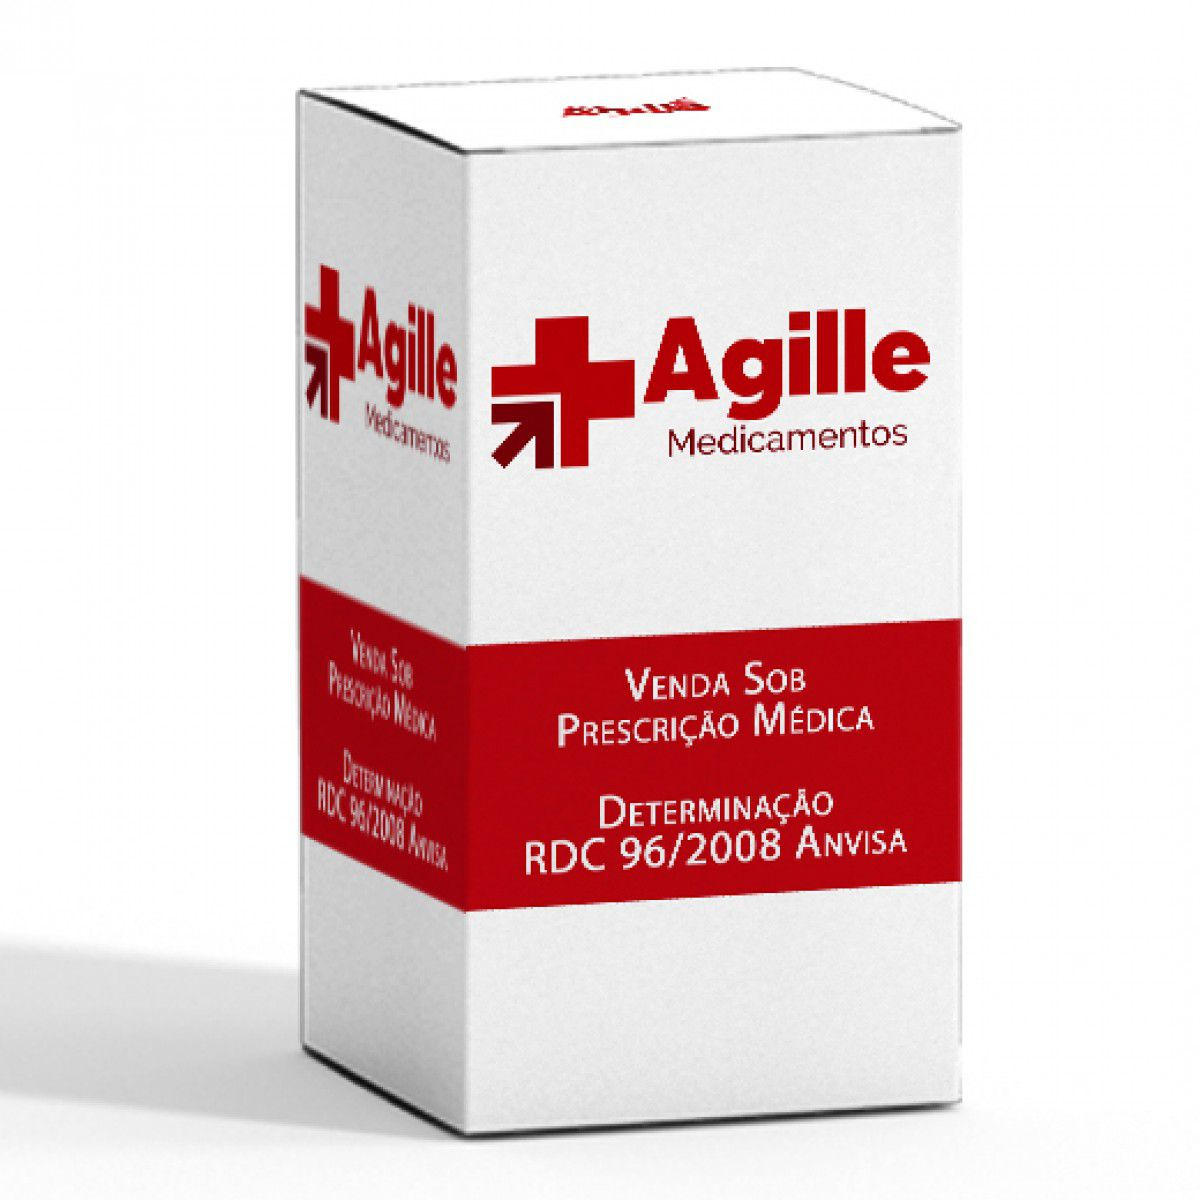 CINACALCETE 60MG 30 COMP. DR.REDDYS  - Agille Speciality